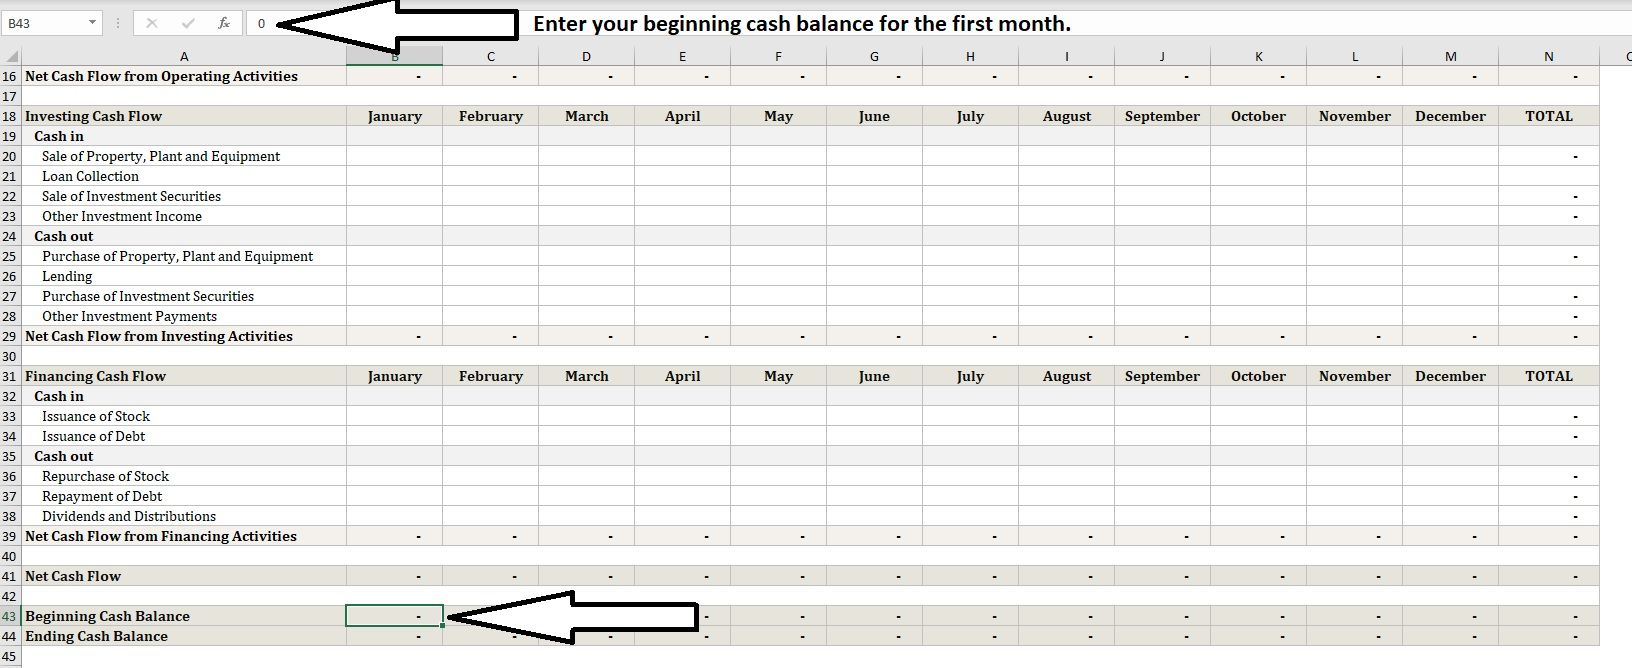 Annual Cash Flow Calculator Cash Balance